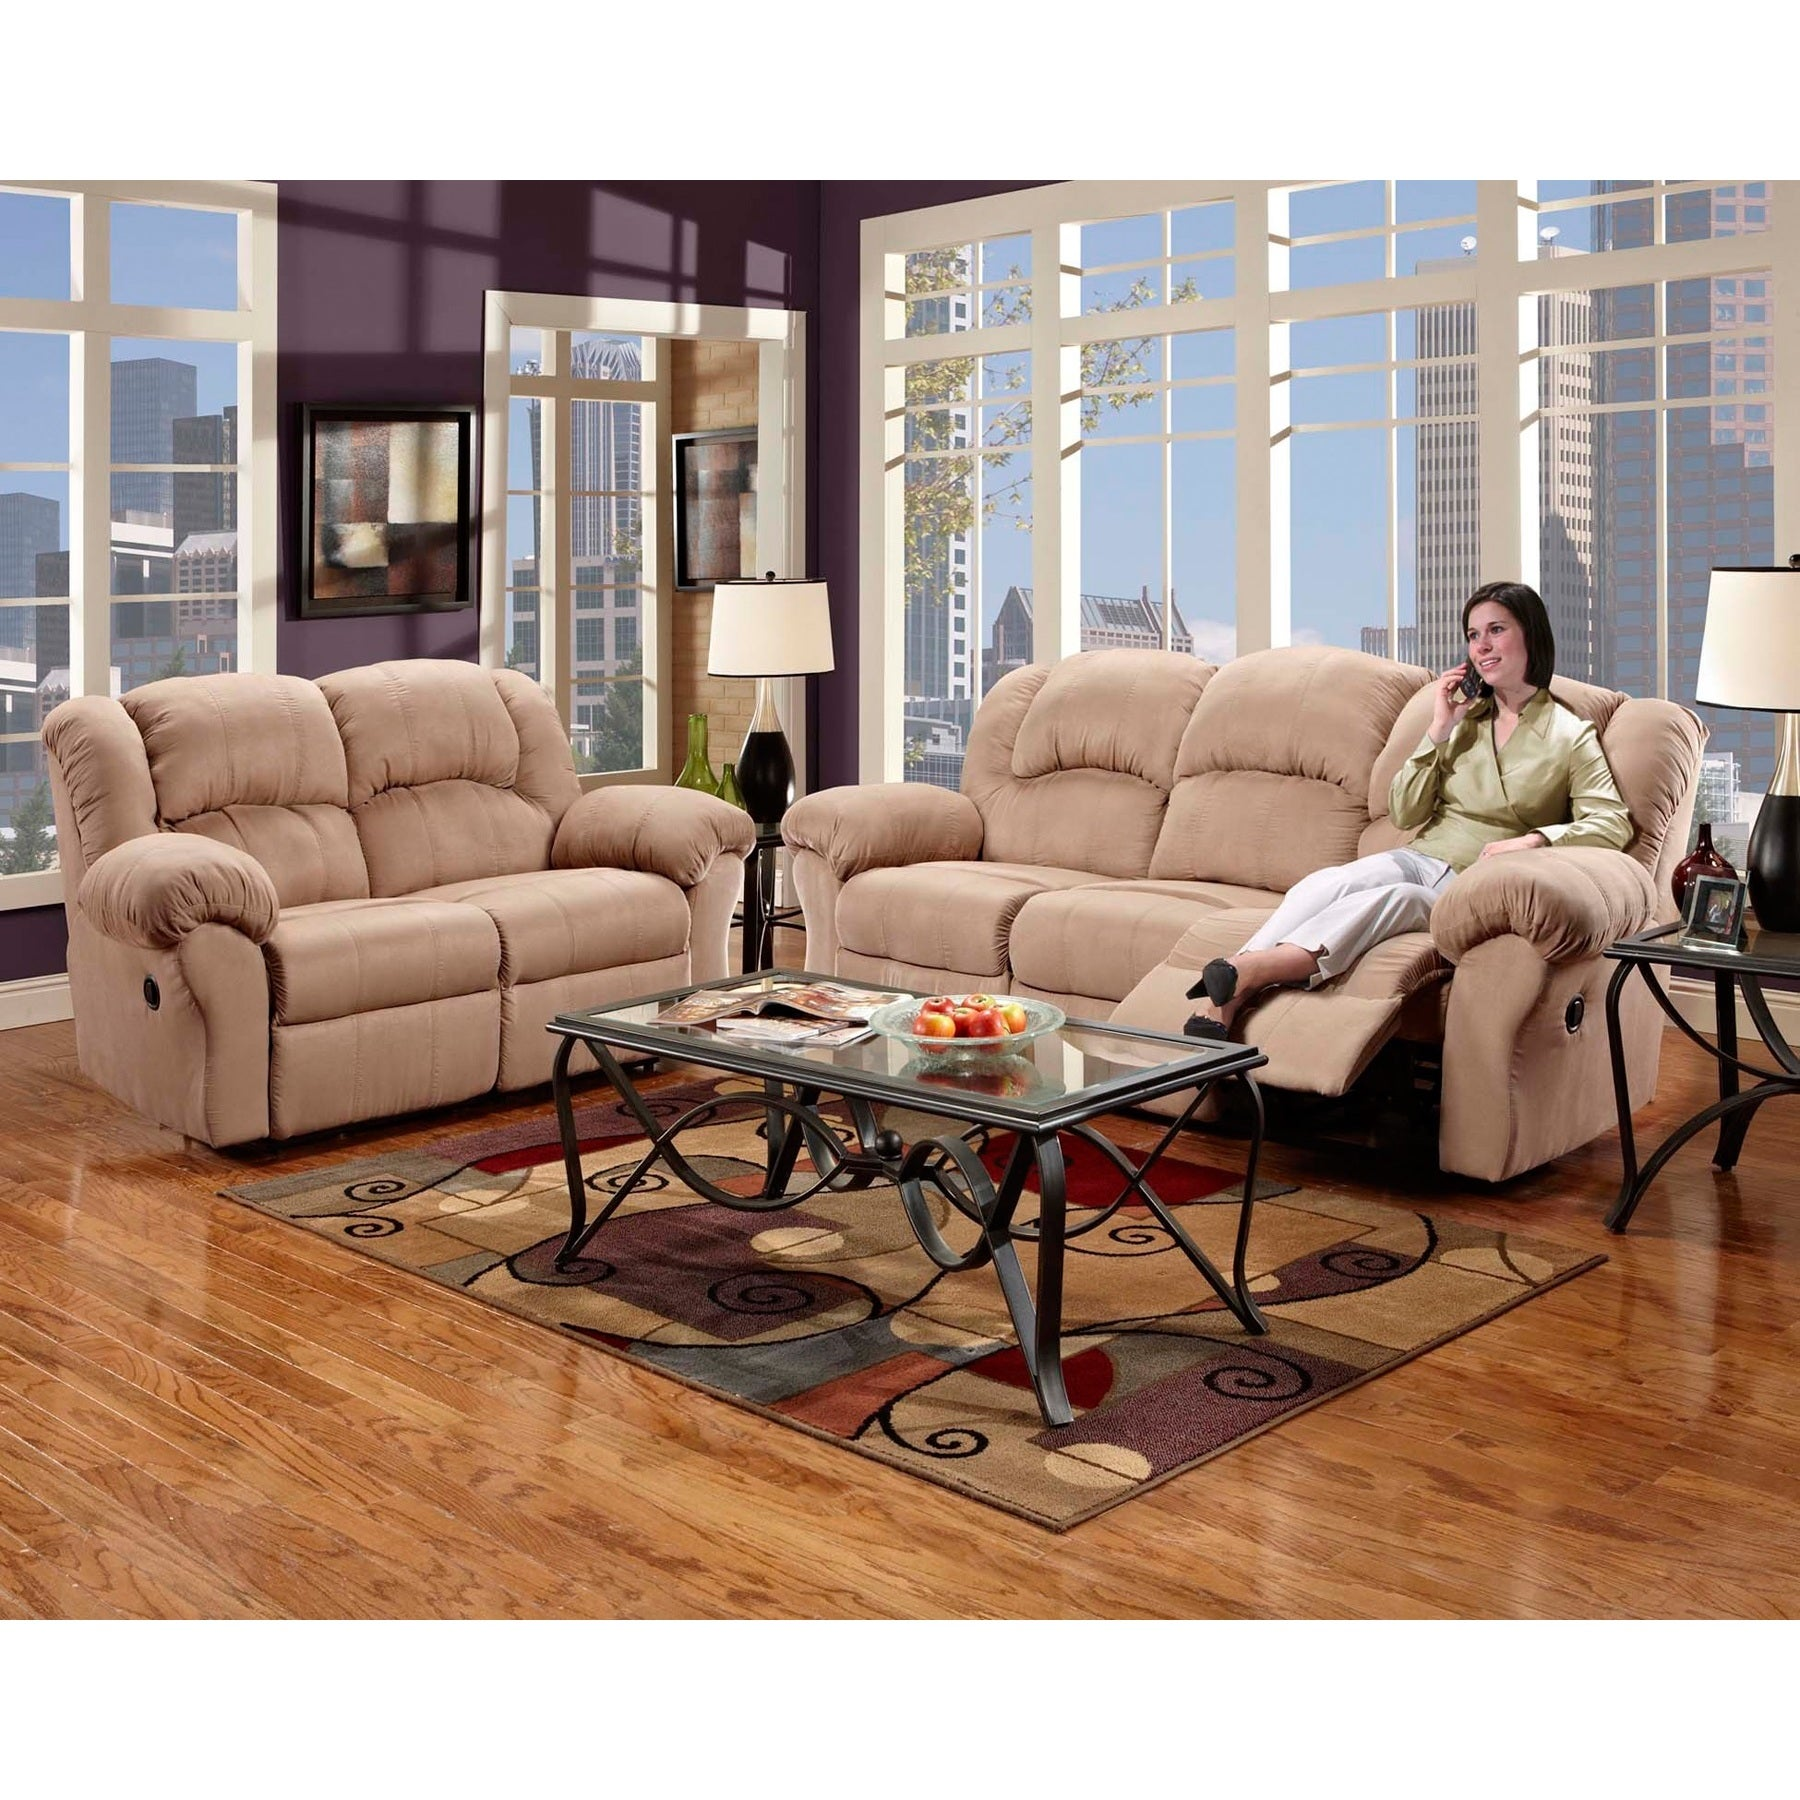 Shop Sensation Microfiber Dual Reclining Sofa Loveseat Set Camel